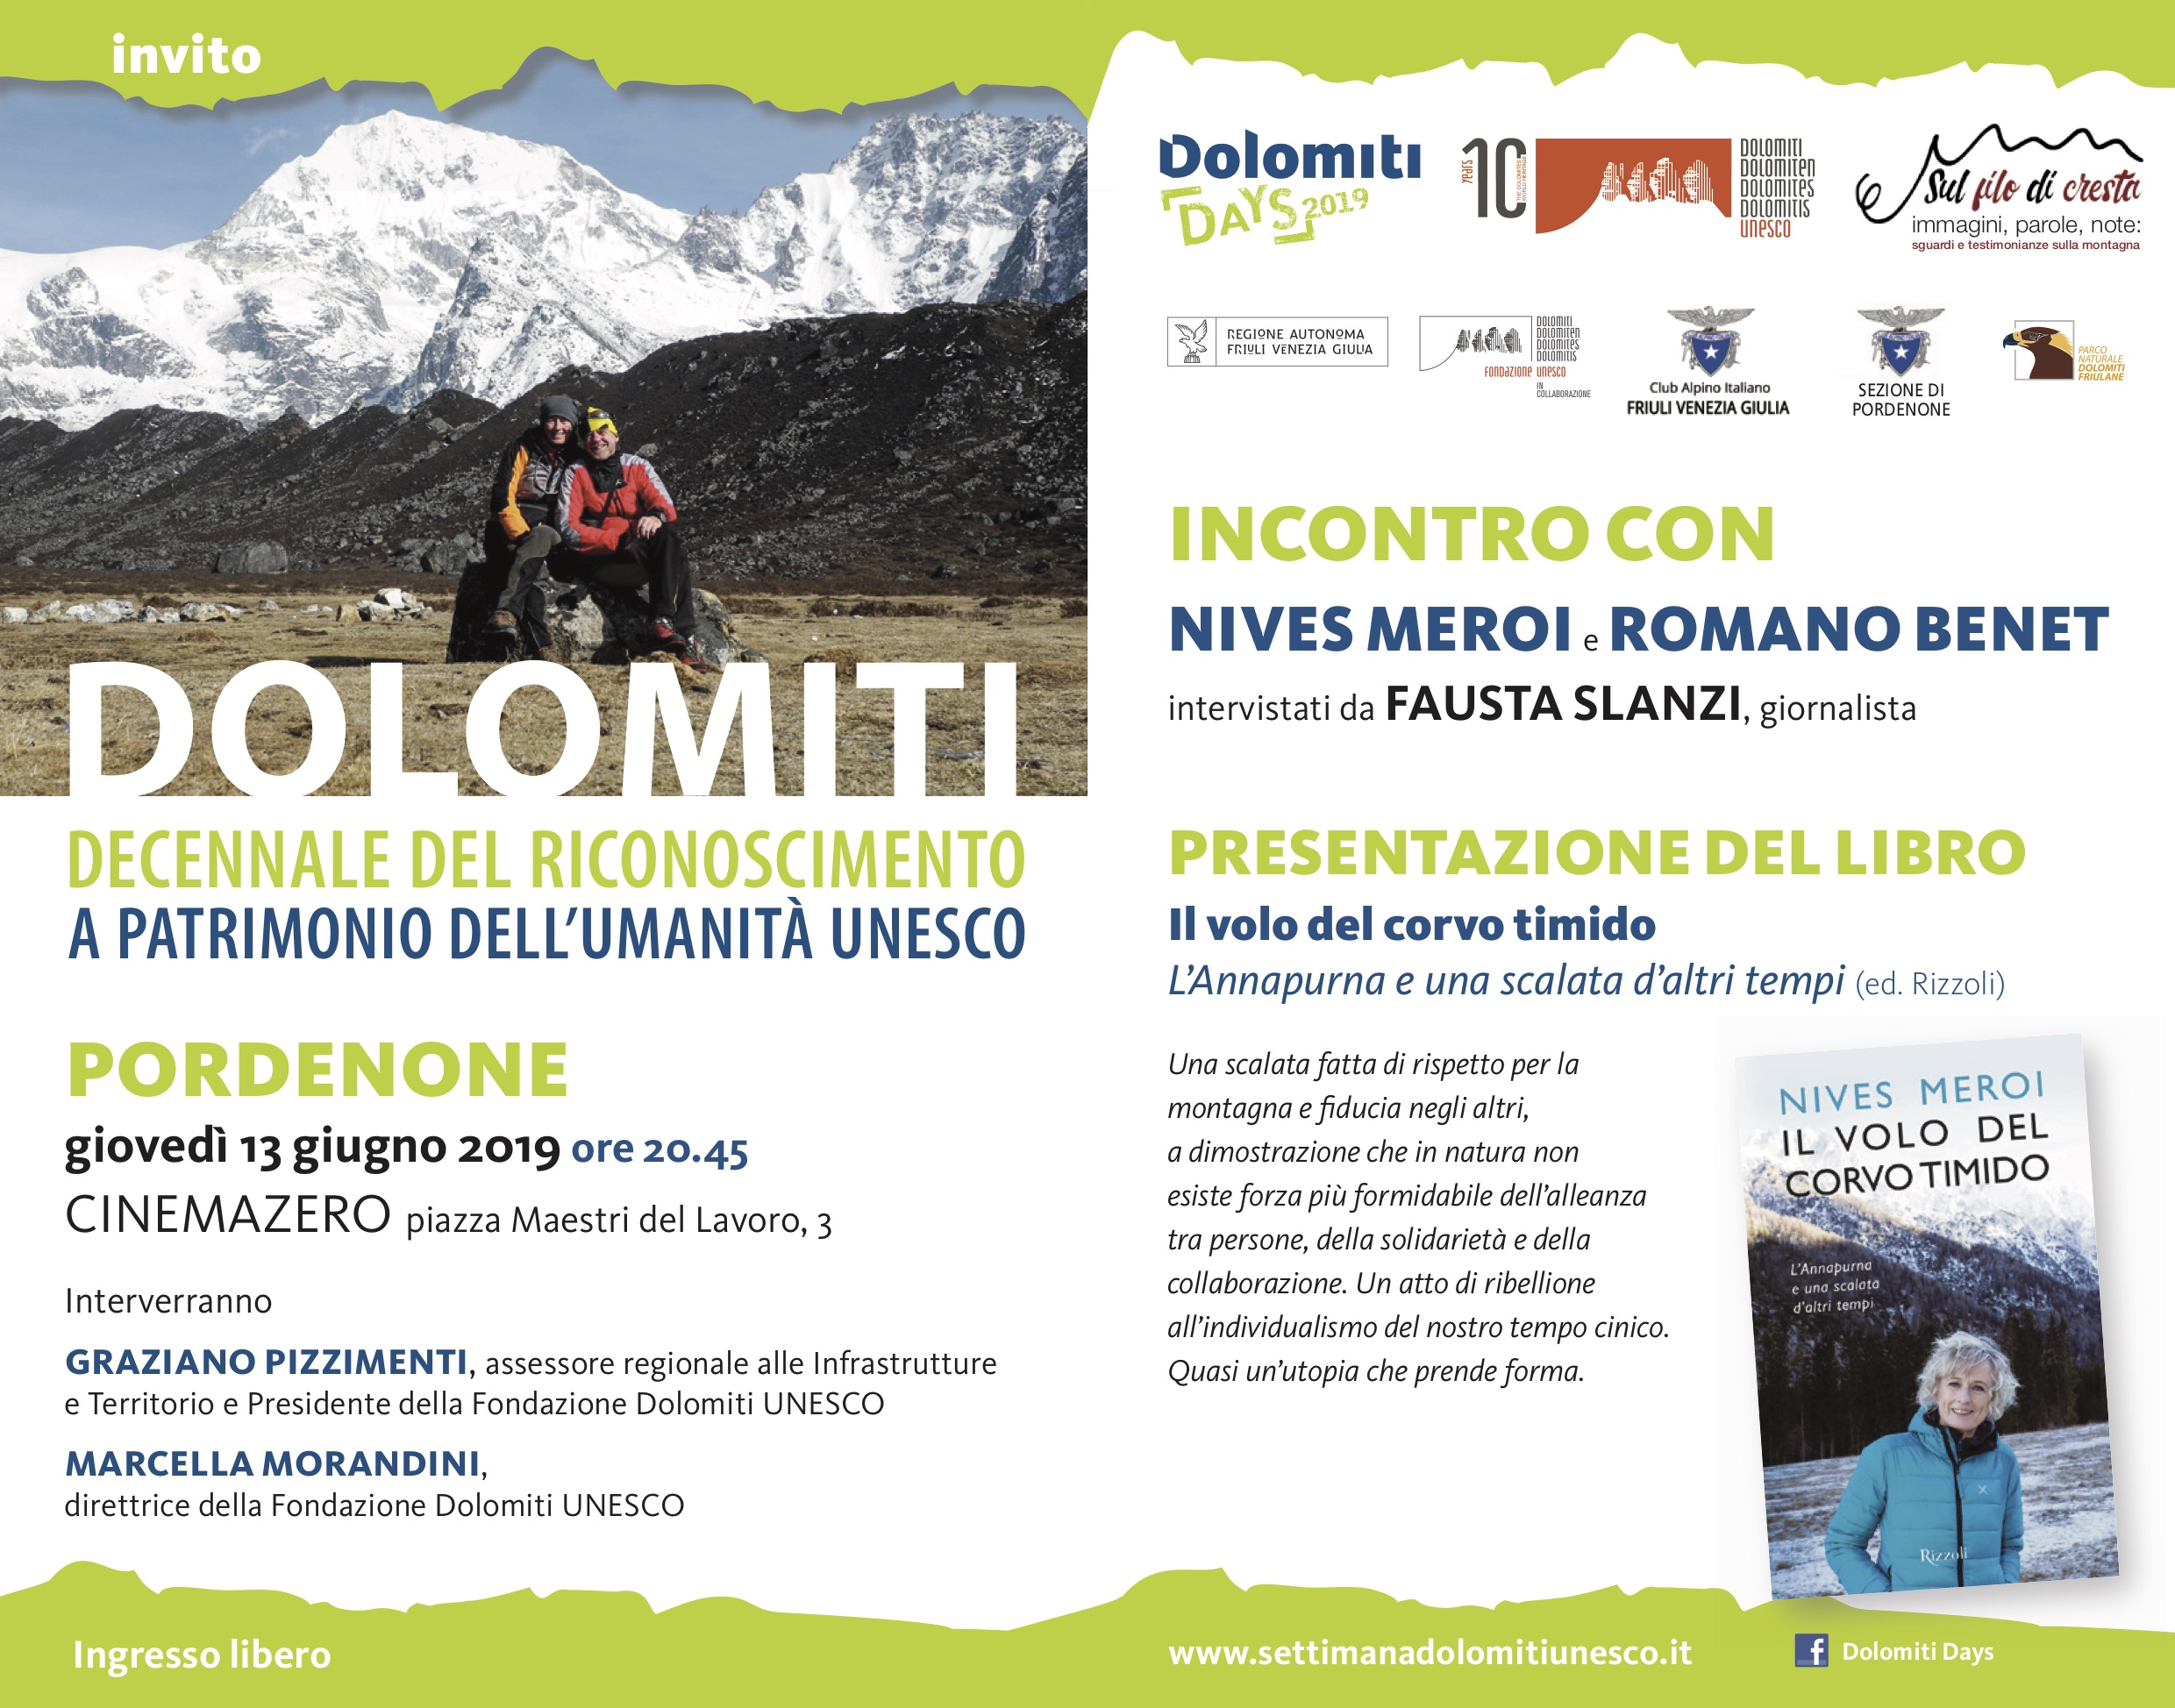 meroi-benet-10years-dolomiti-unesco